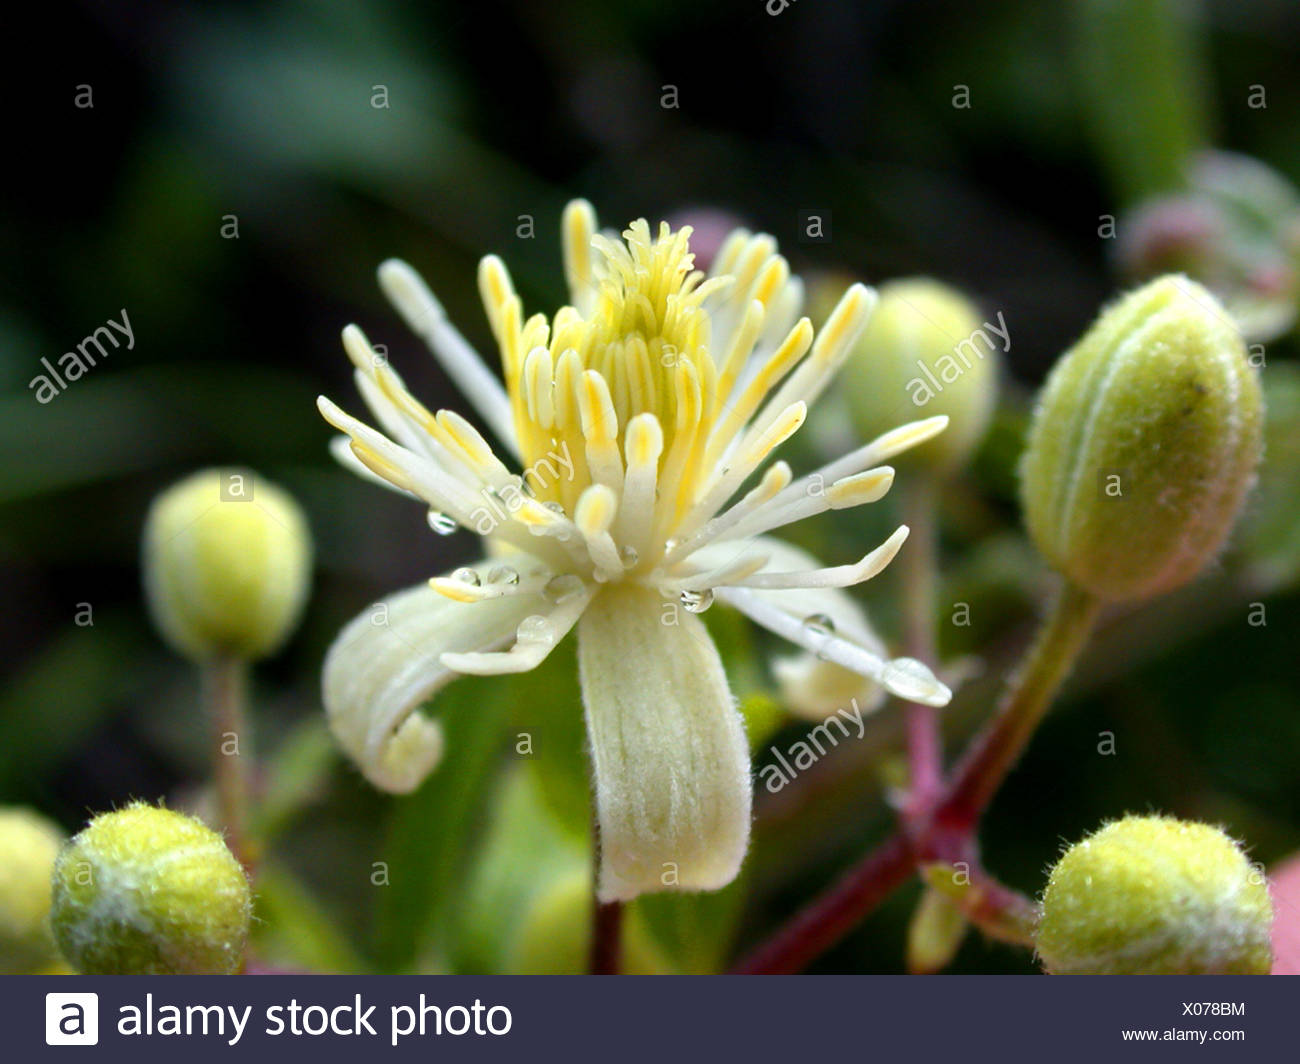 Travelers Joy, Old Man's Beard (Clematis vitalba), flower, Germany - Stock Image